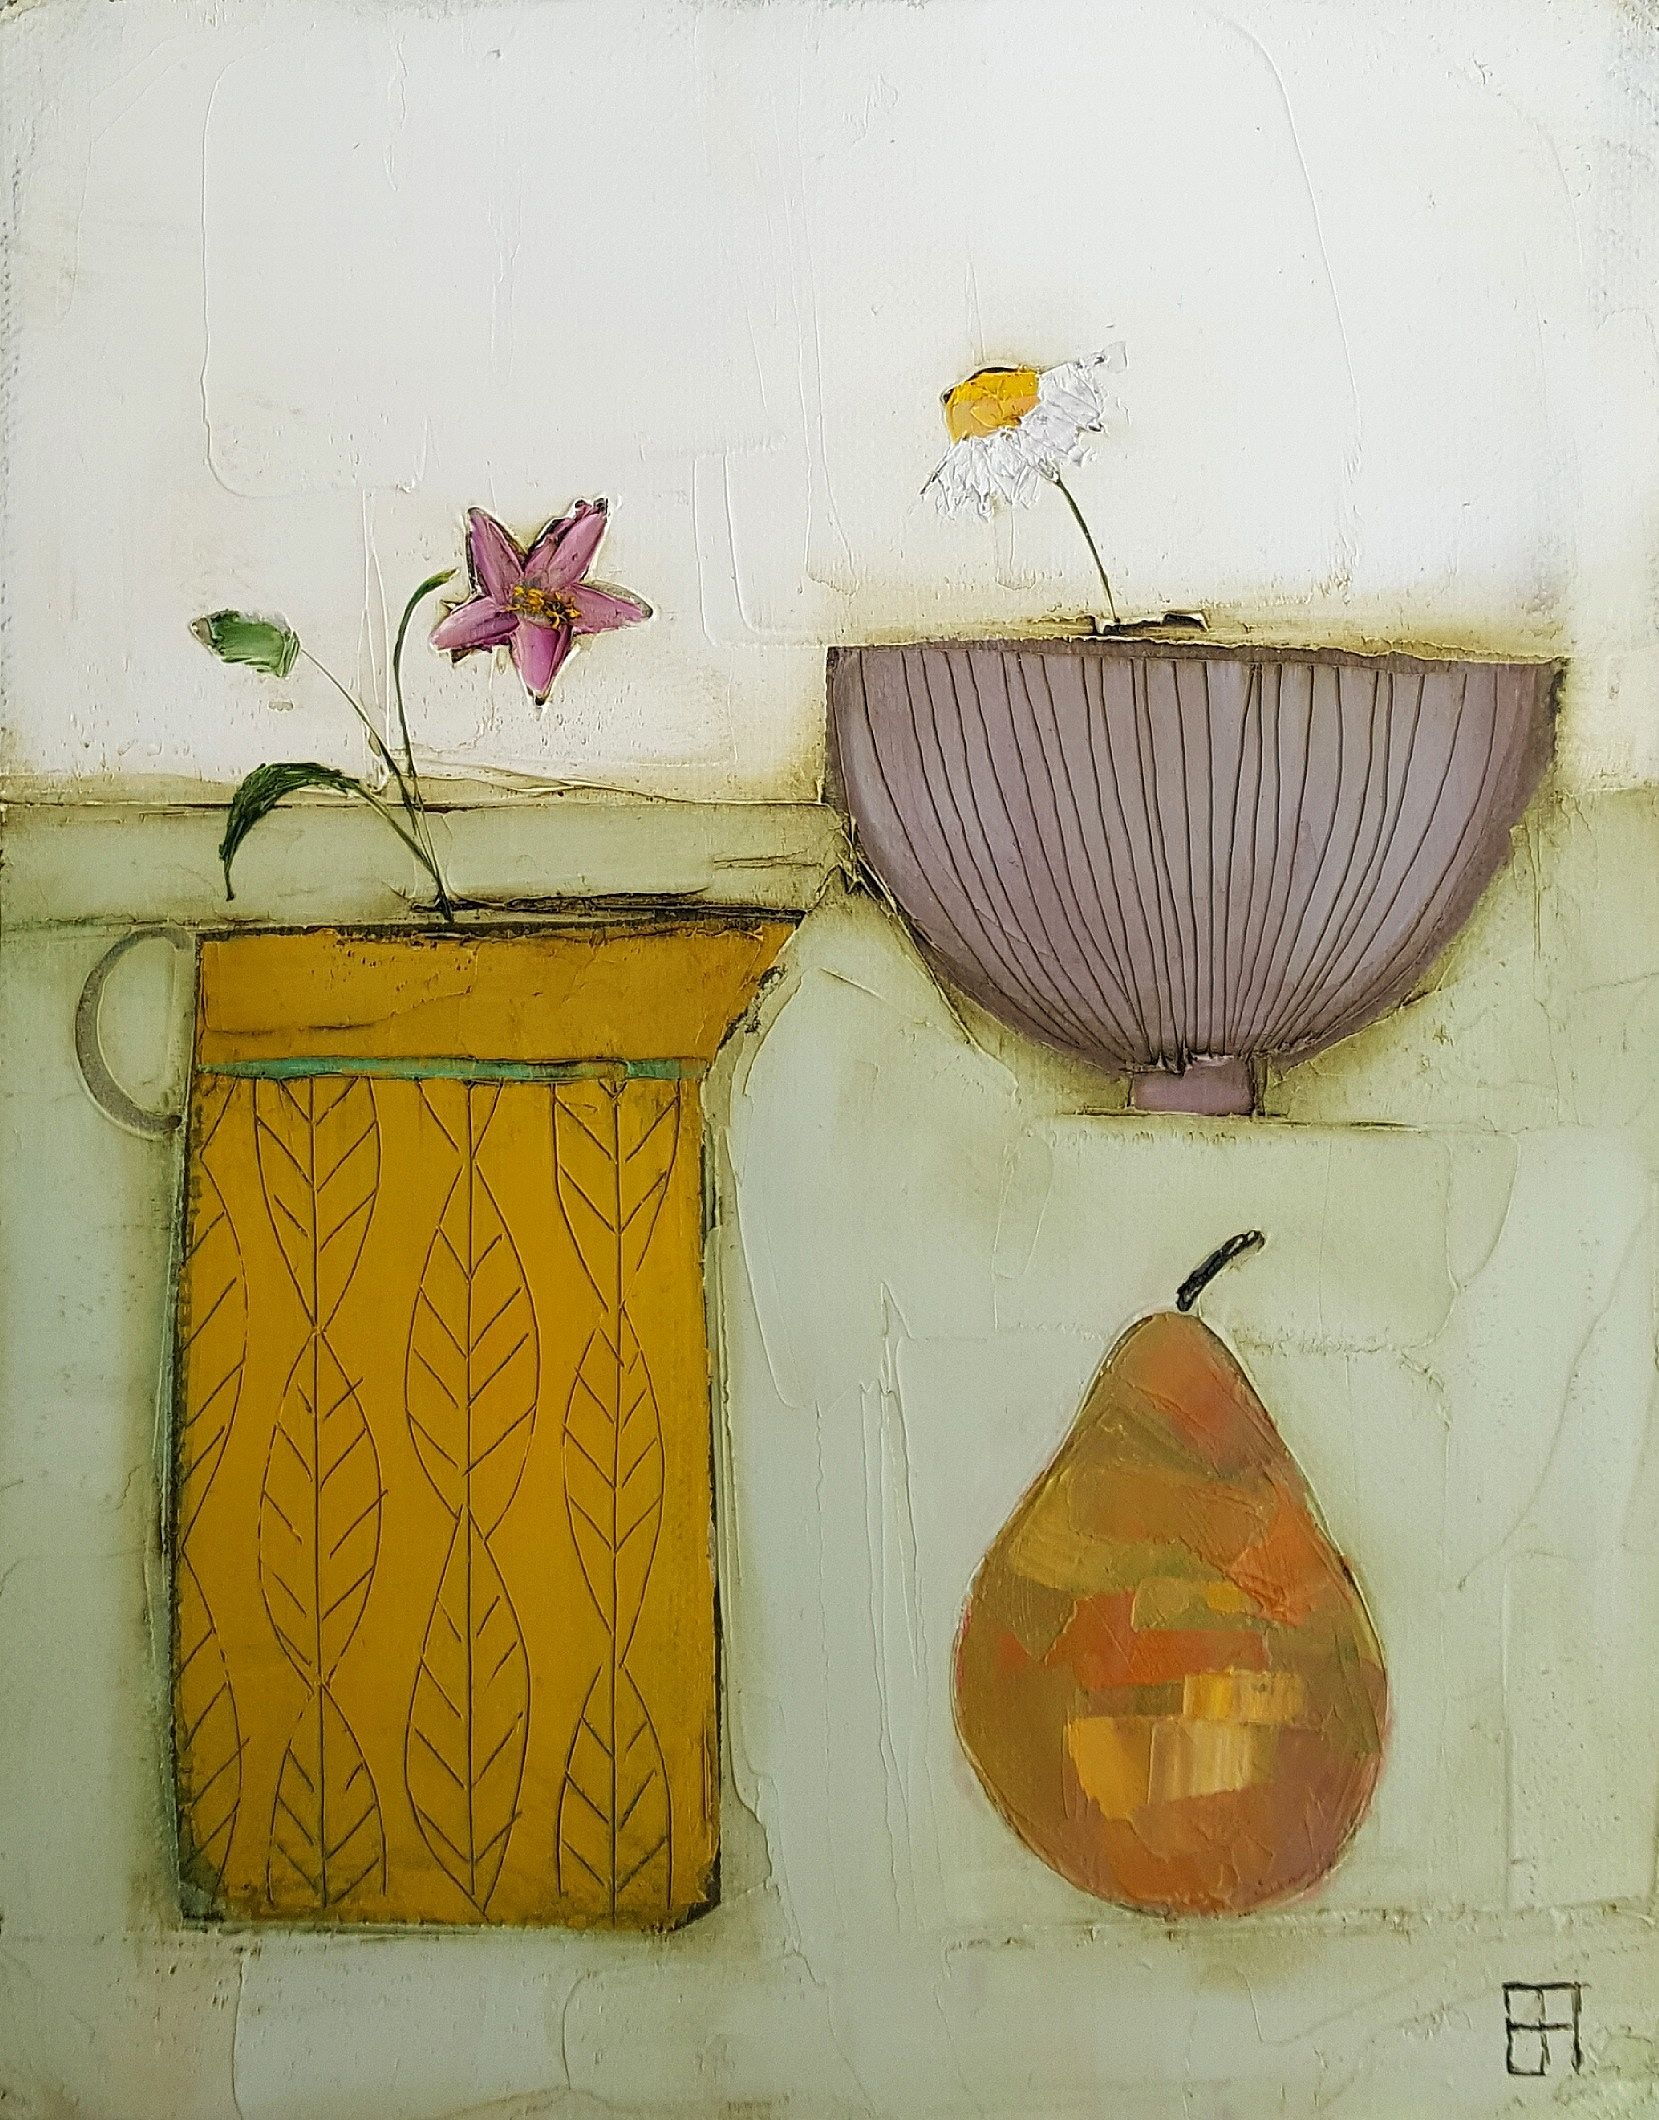 Eithne  Roberts - Mustard jug and pear